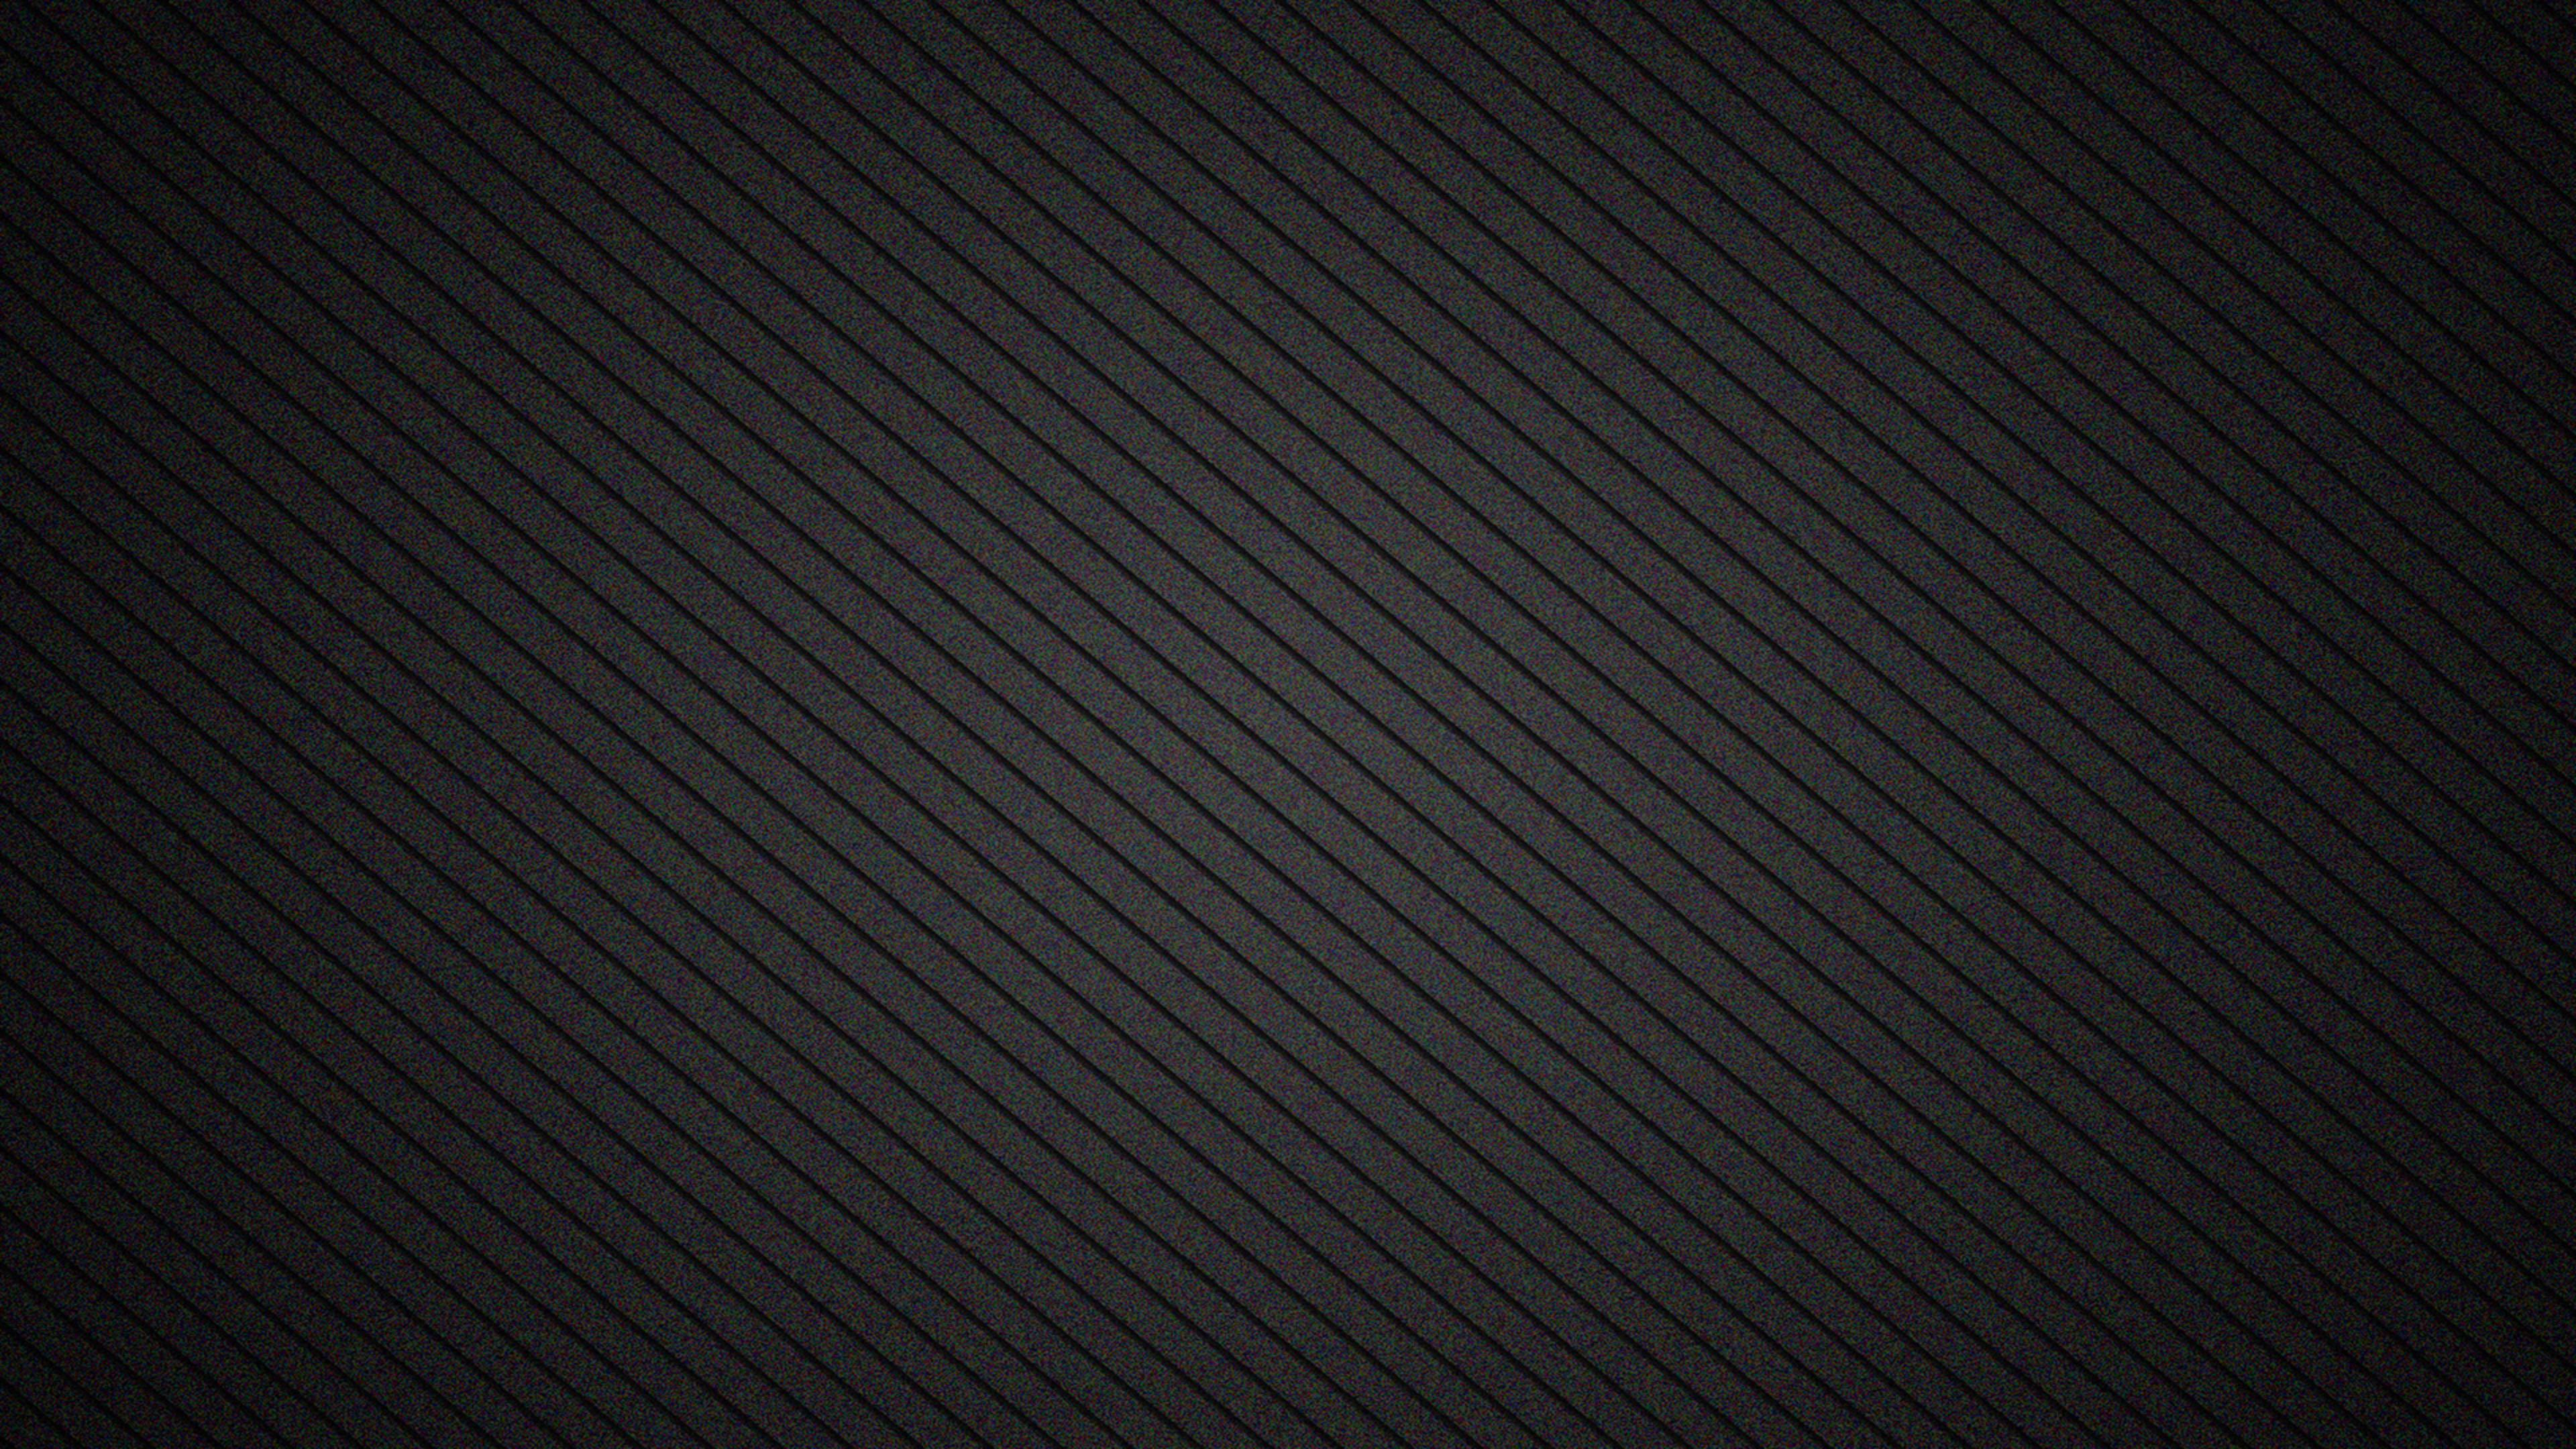 46 Black Wallpapers In 4k On Wallpapersafari